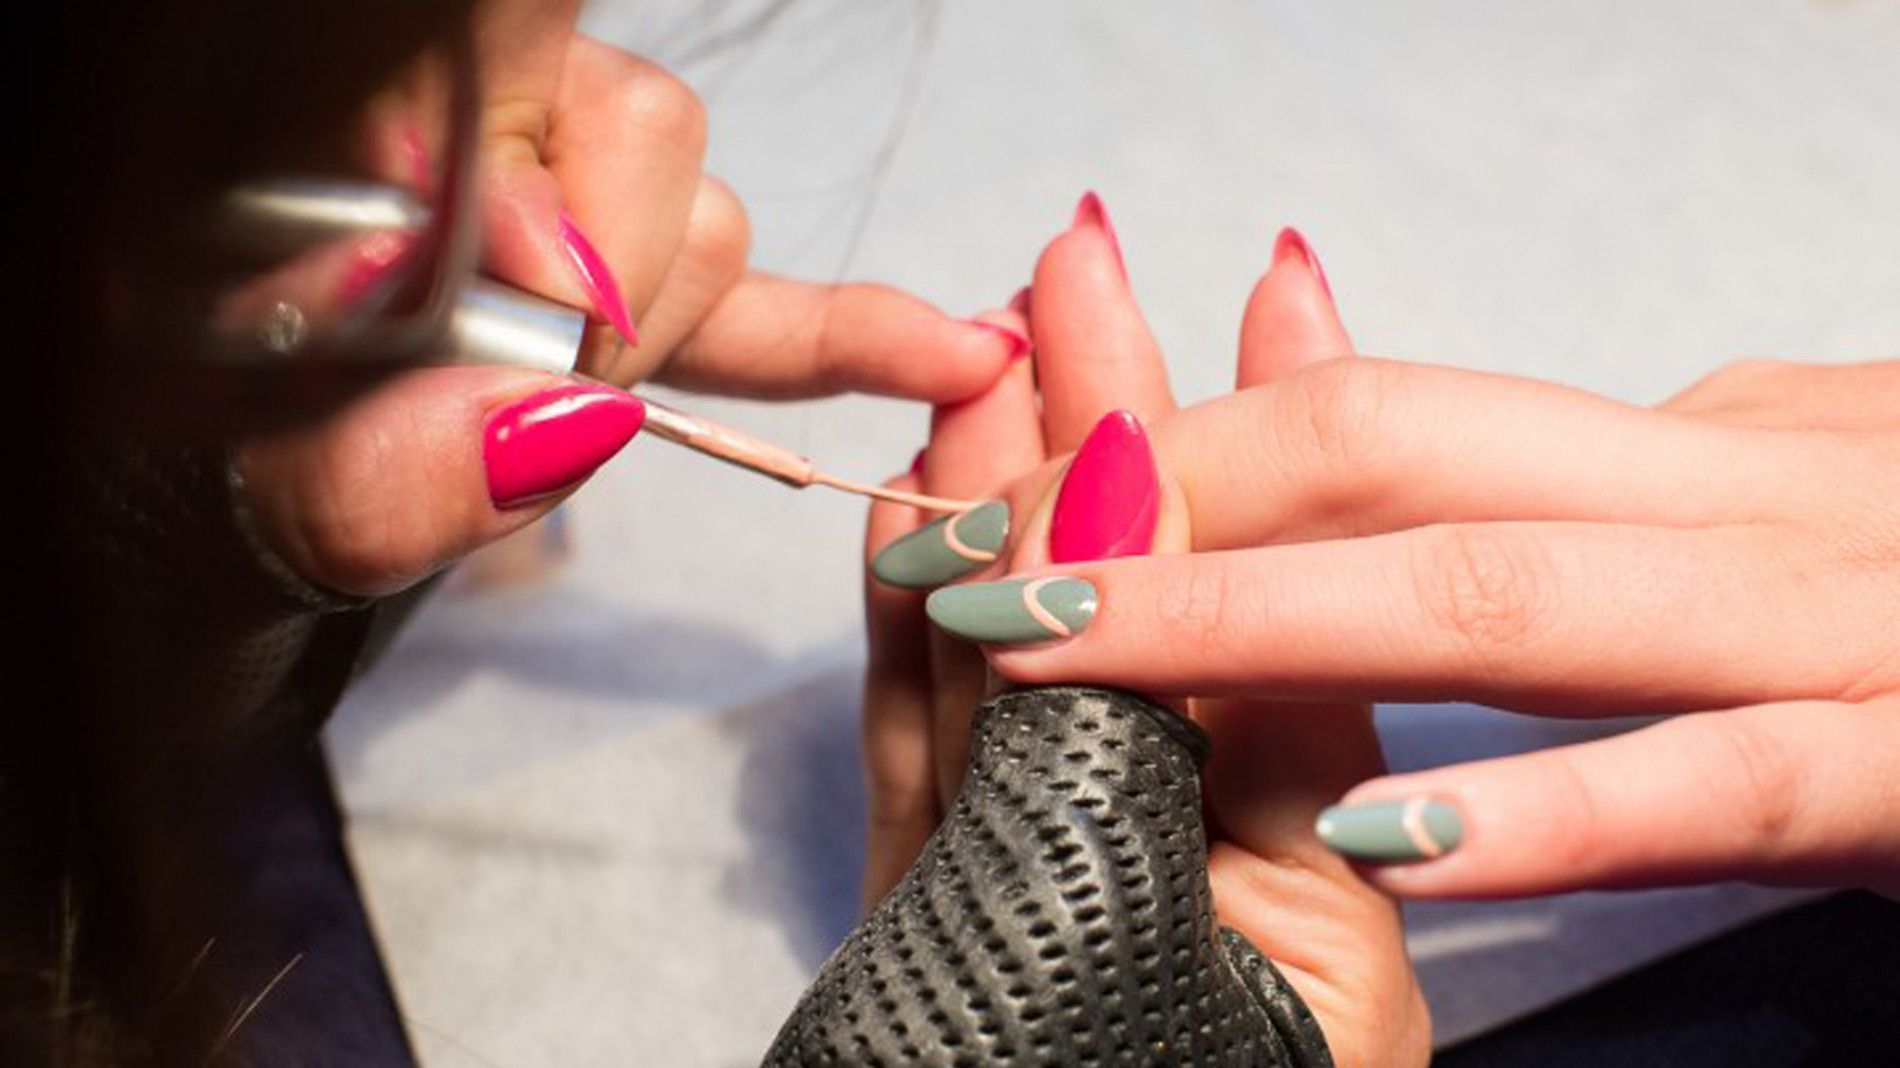 The Best Nail Salons in New York City According to 10